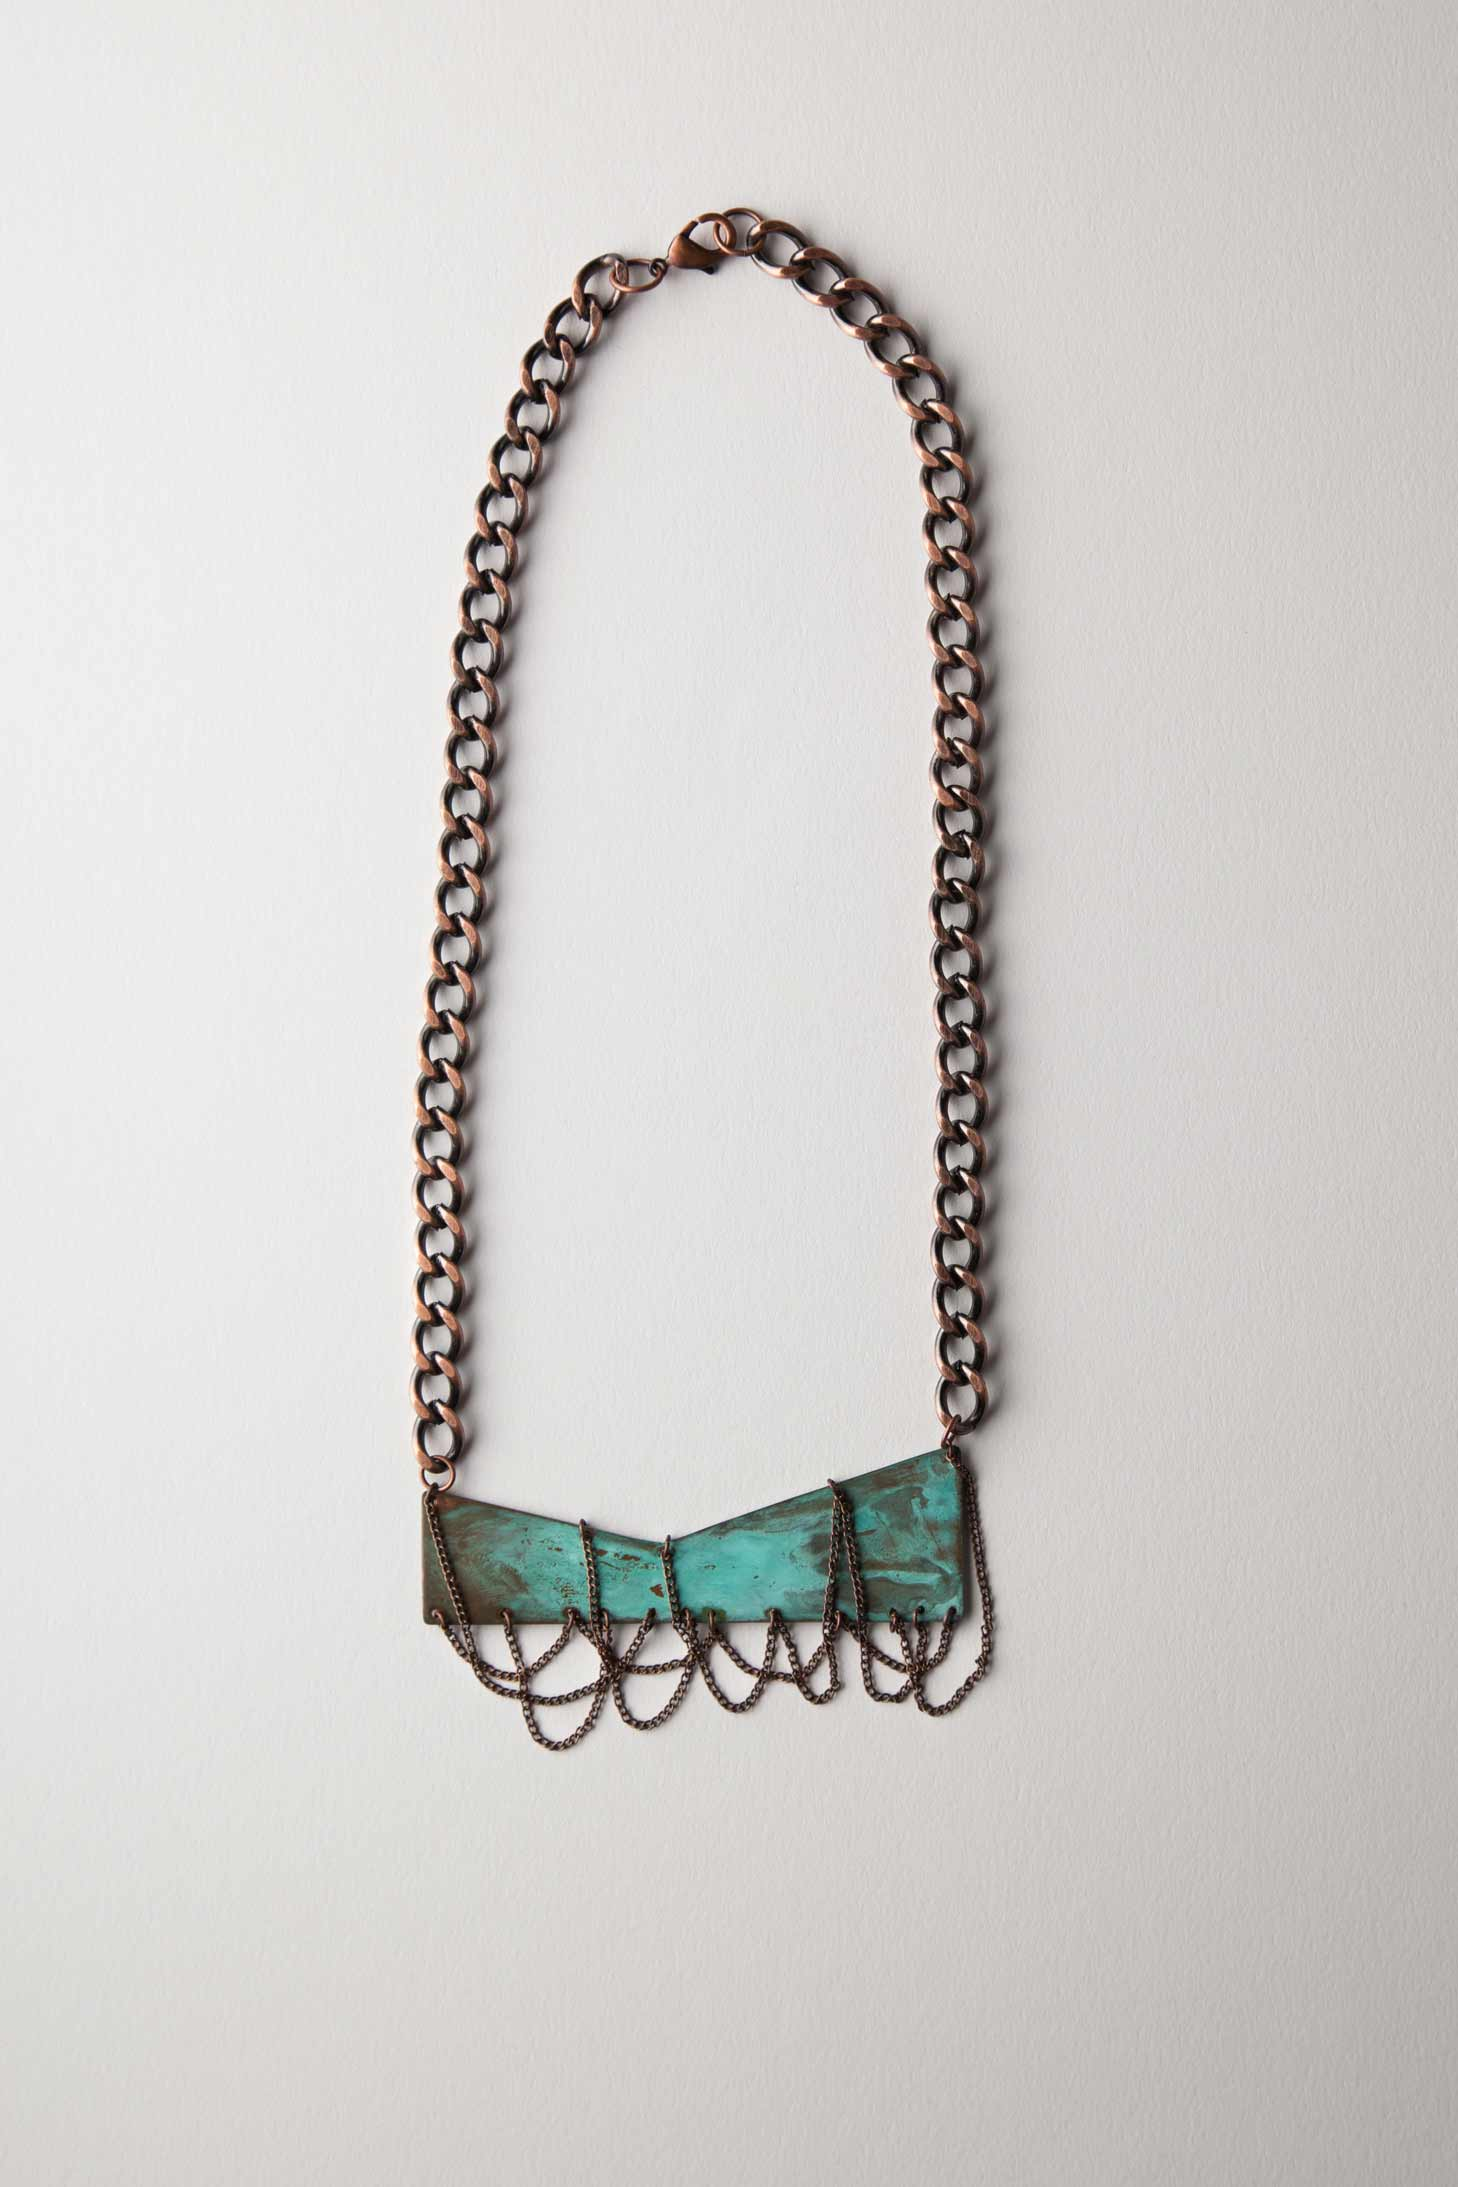 Verdigris Patina Pendant Necklace w/ Copper Chains